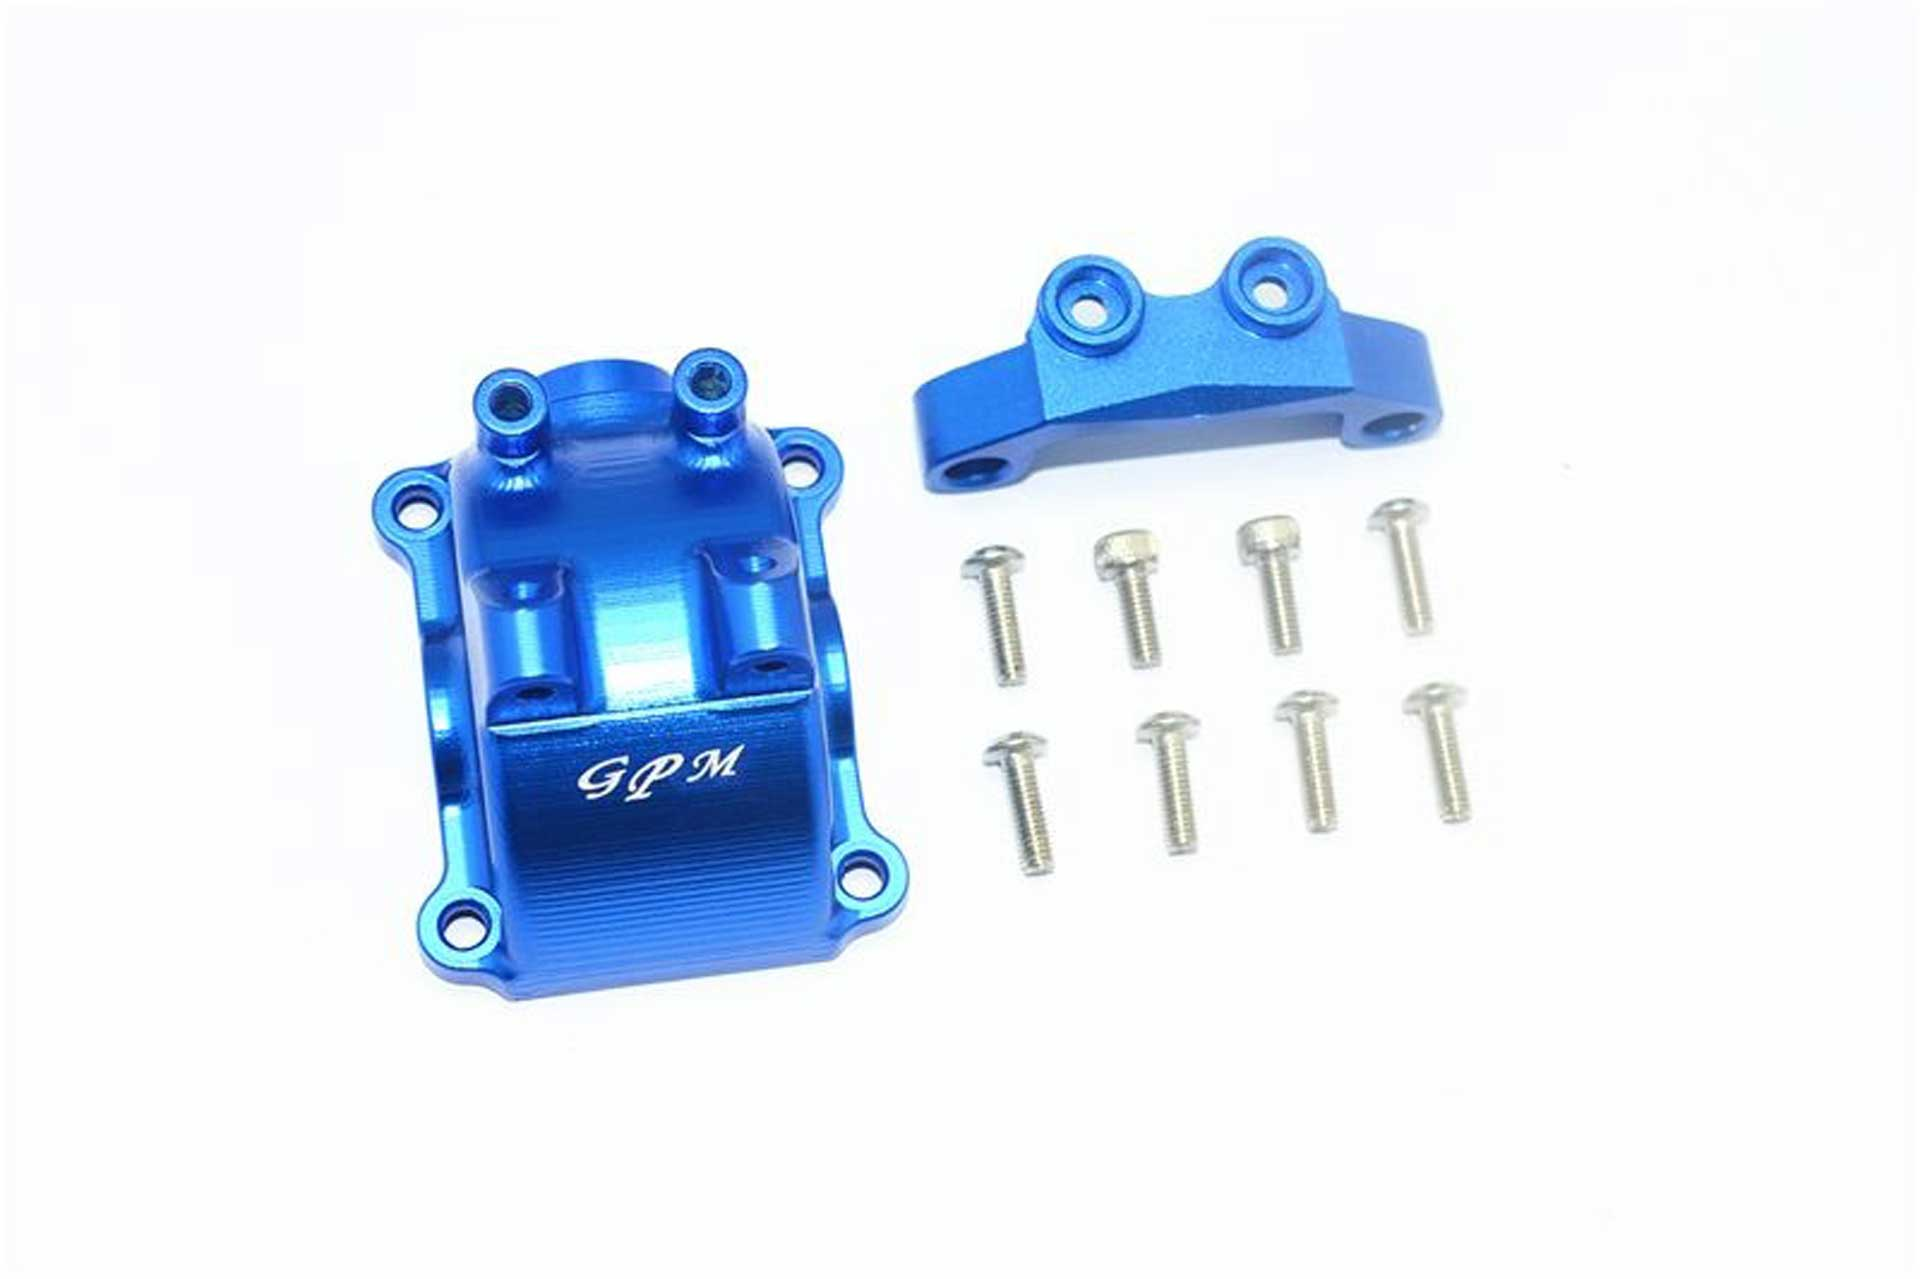 GPM ALU FRONT/REAR GEARBOX COVER+UPPER ARM ST ABILIZER -10PC SET blue GPM TAMIYA TT-02